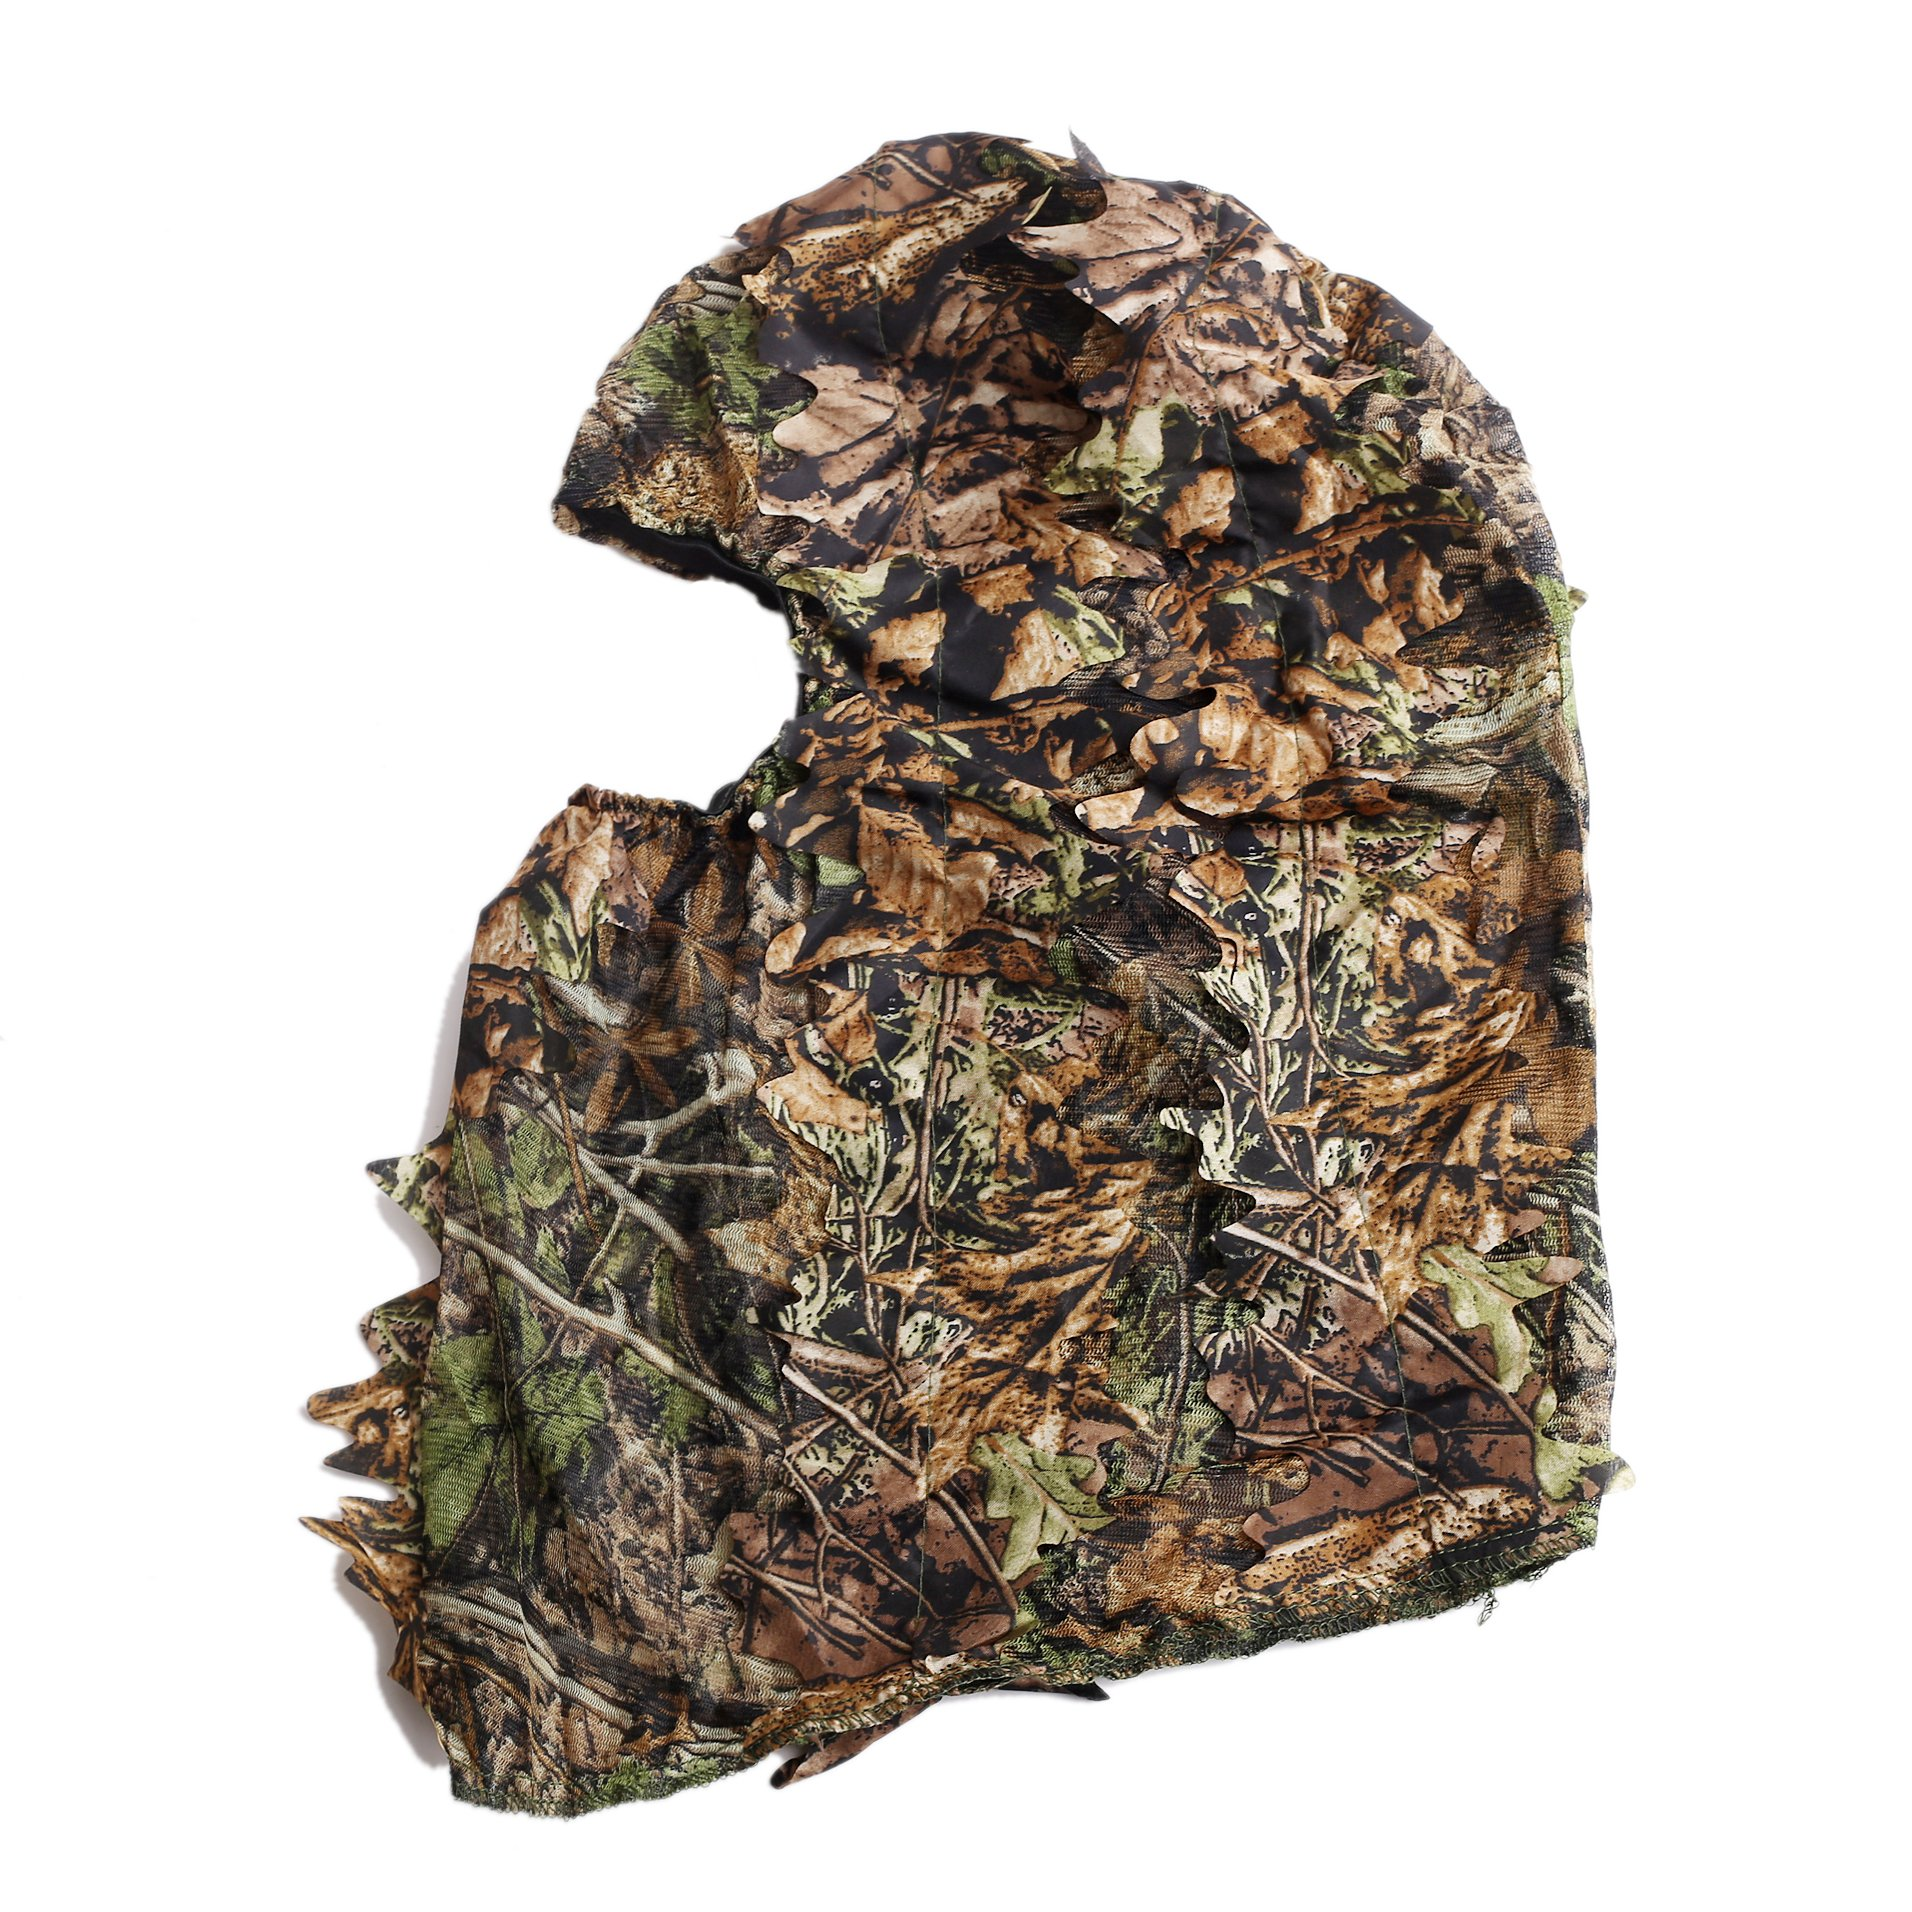 ABCAMO Light Weight Hunting Camouflage Full Cover 3D Leafy Face Mask by ABCAMO (Image #3)